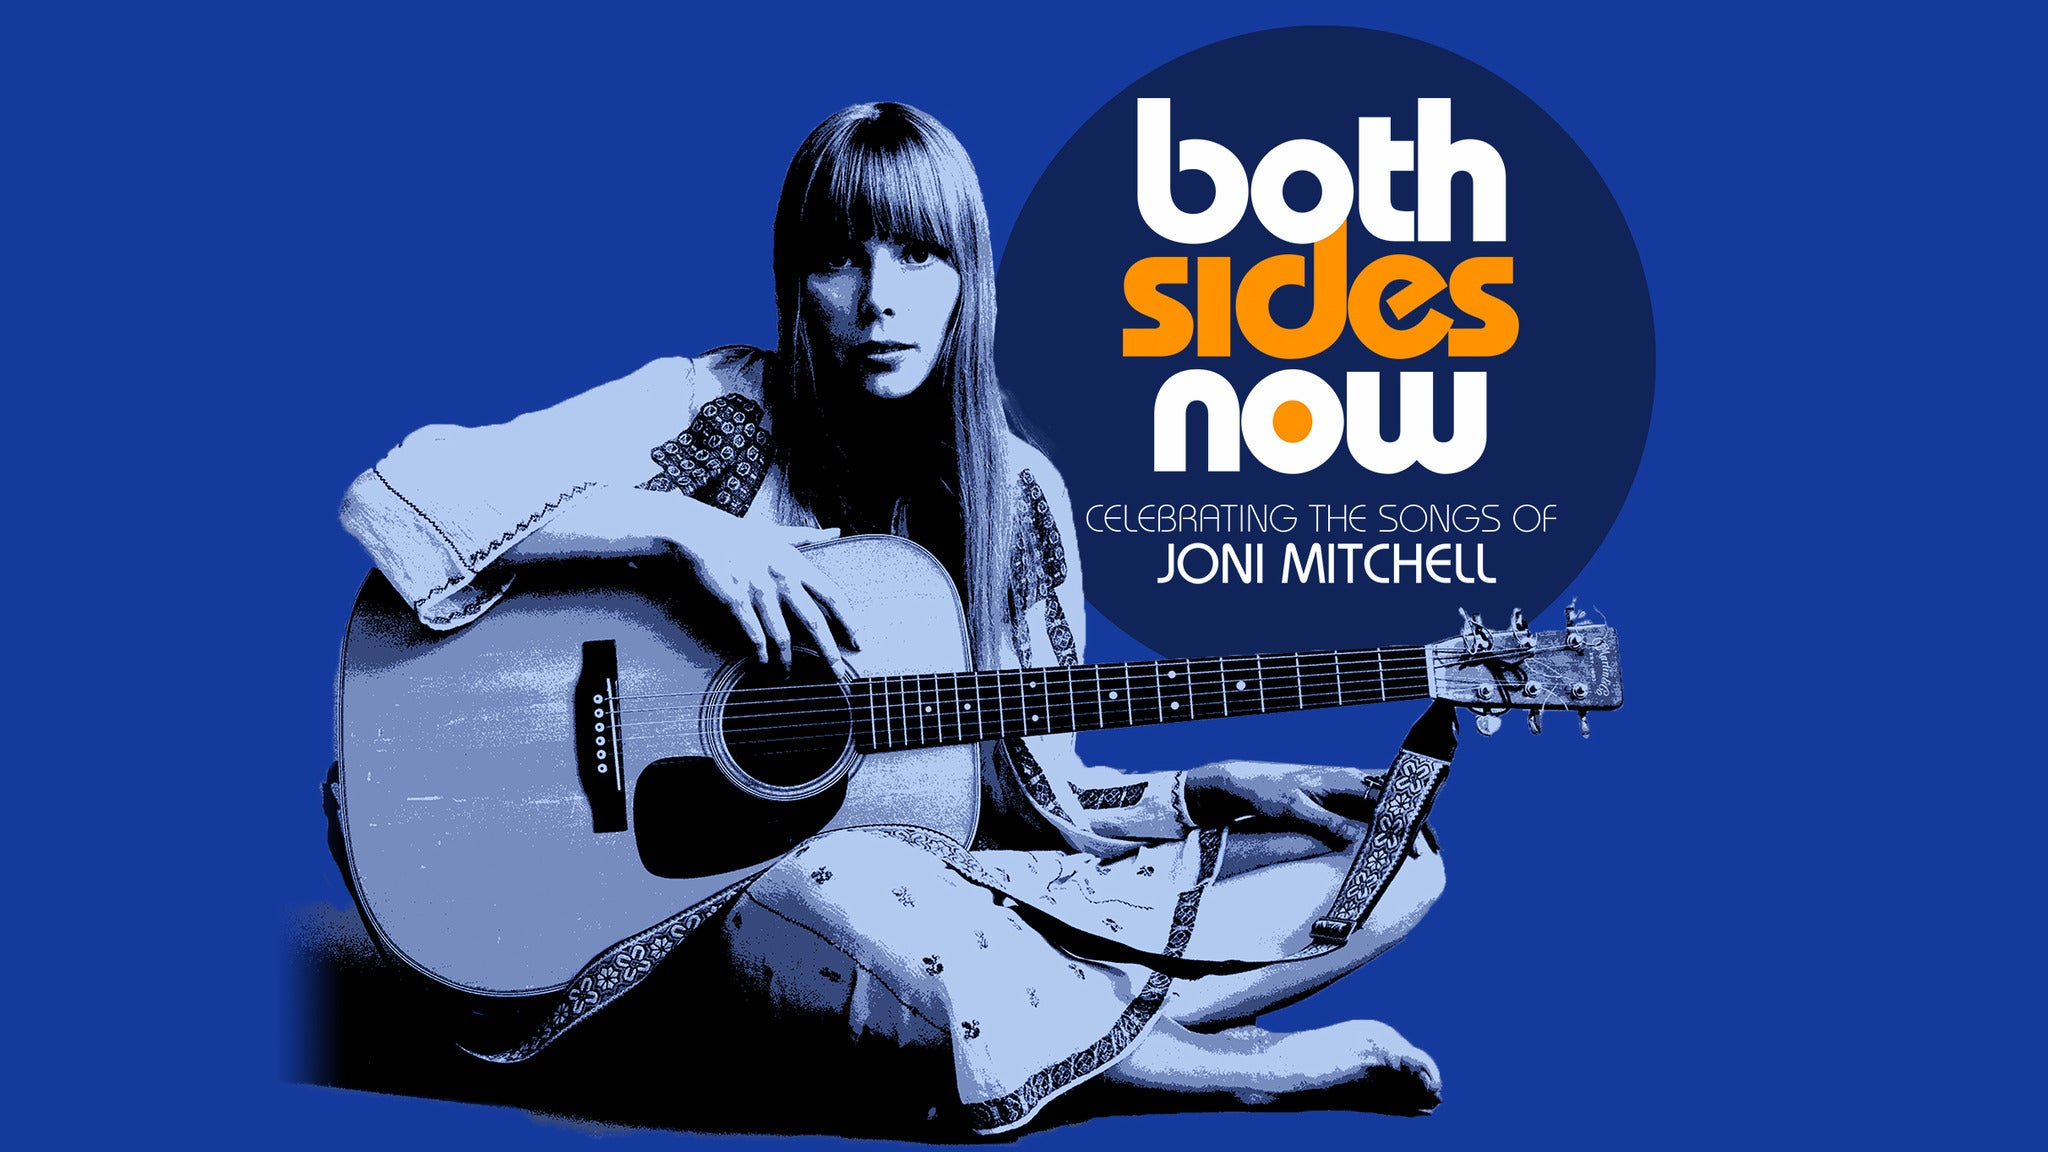 Both Sides Now: Celebrating The Songs Of Joni Mitchell